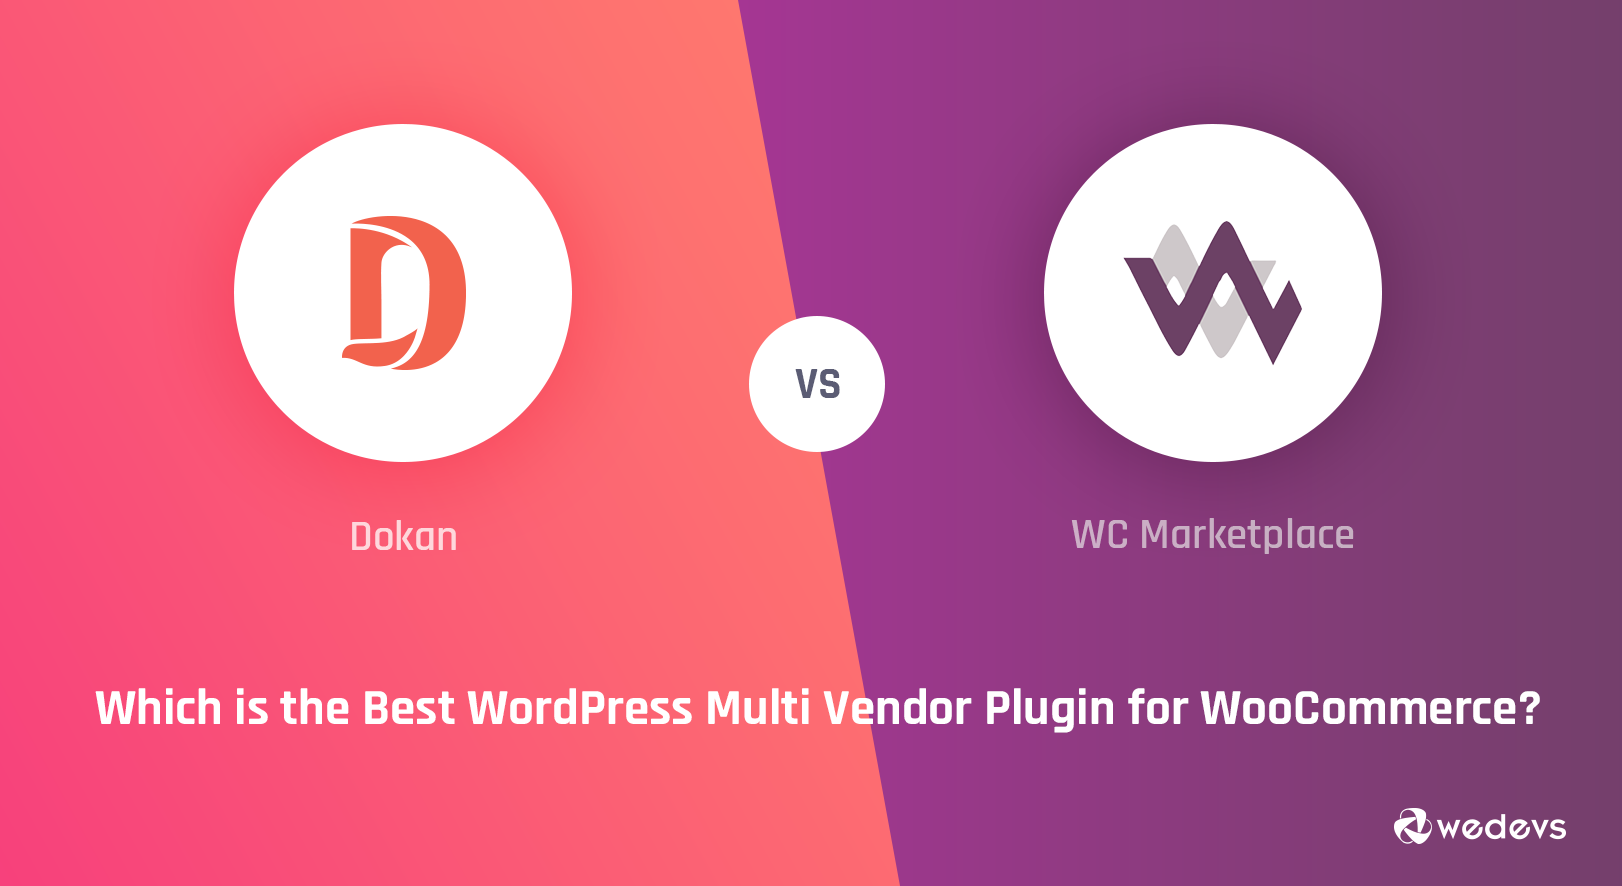 dokan-best-wordpress-woocommerce-multi-vendor